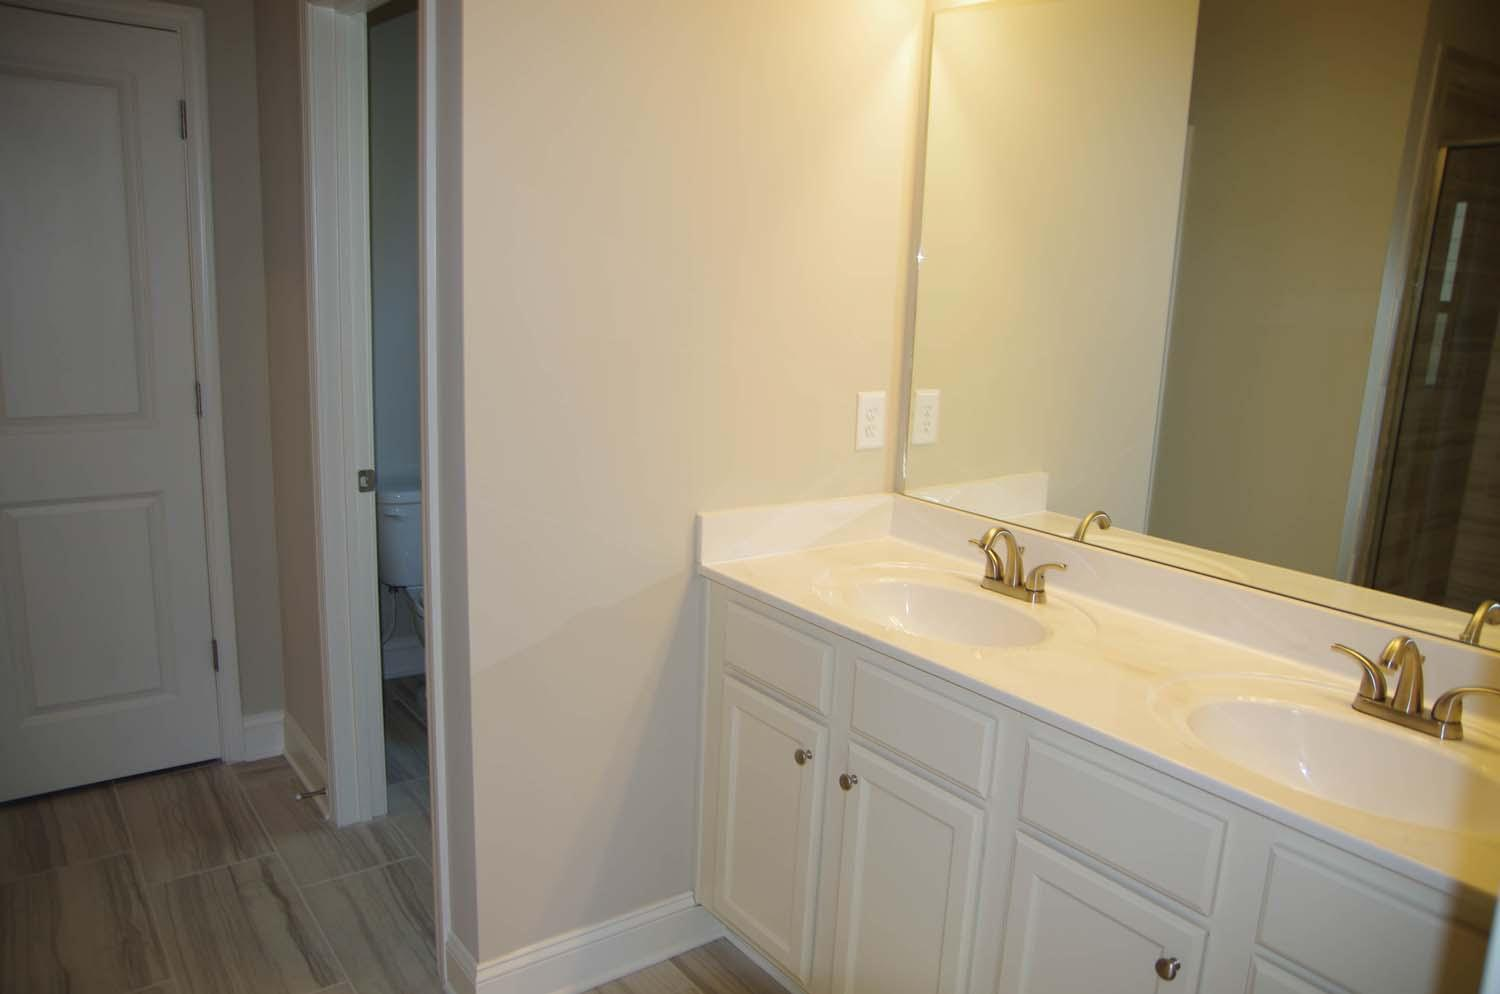 Bathroom featured in the Avery By Chafin Communities in Atlanta, GA